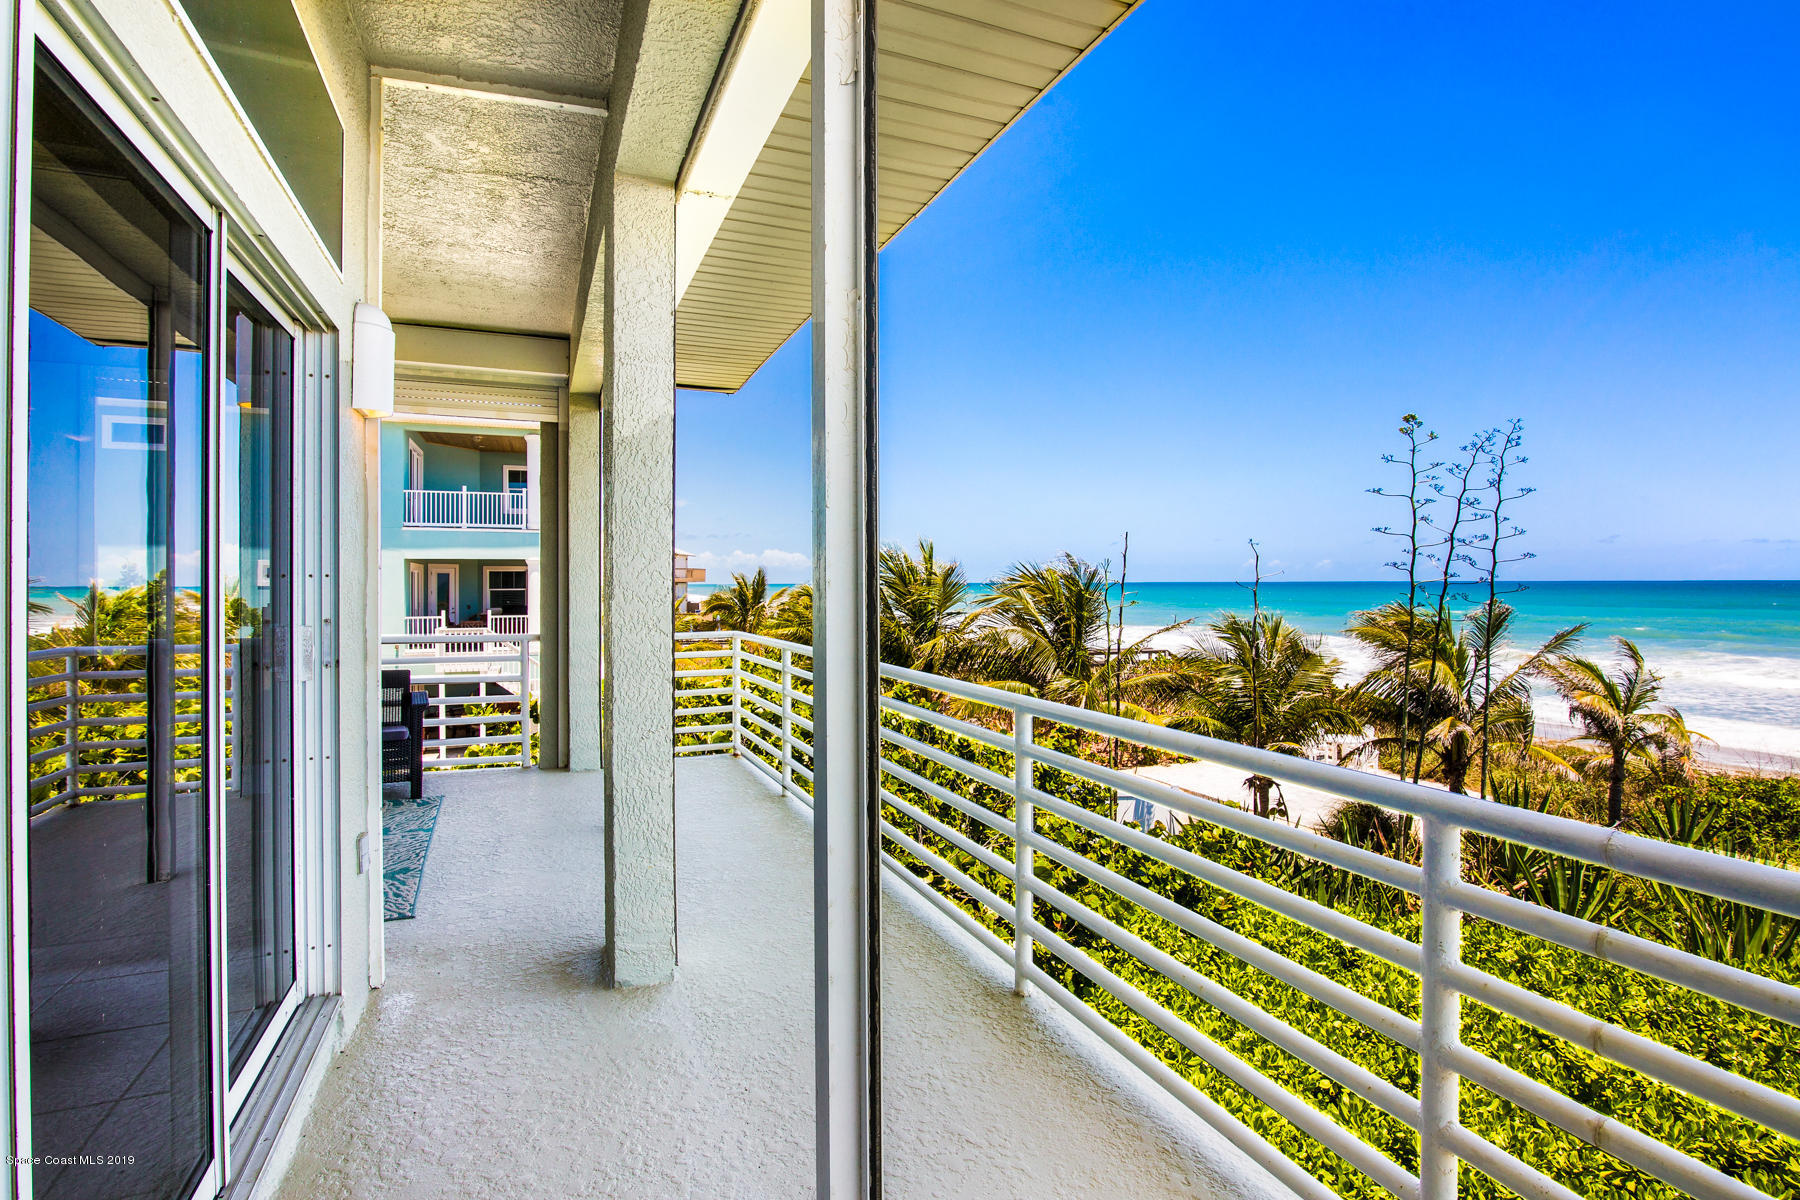 Additional photo for property listing at 2775 S Highway A1a Melbourne Beach, Florida 32951 Estados Unidos